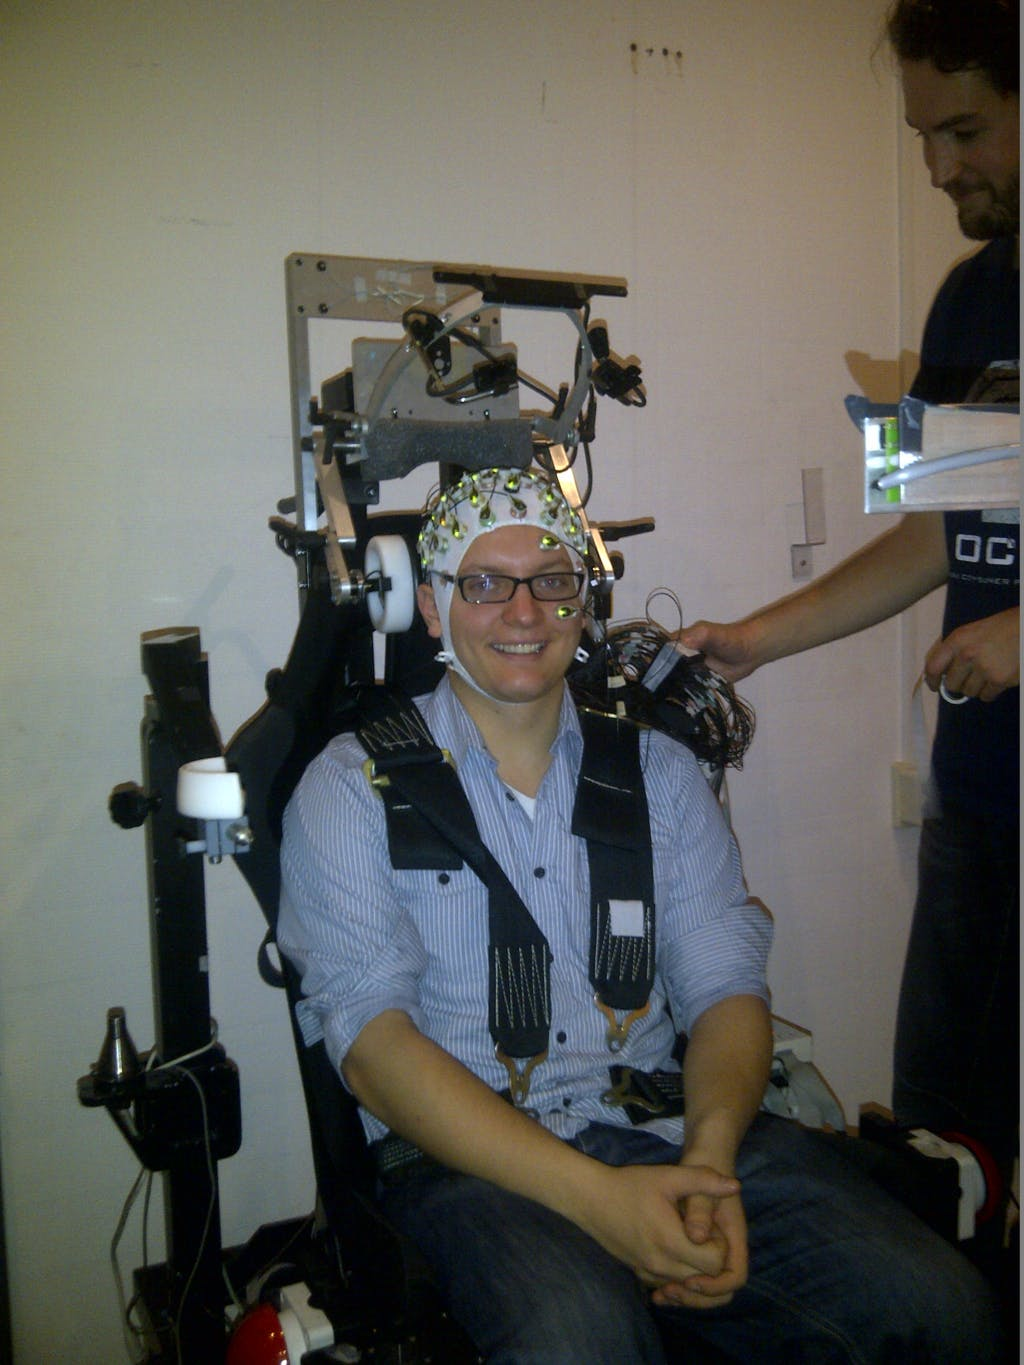 A person in a EEG set up ready to measure brain activity